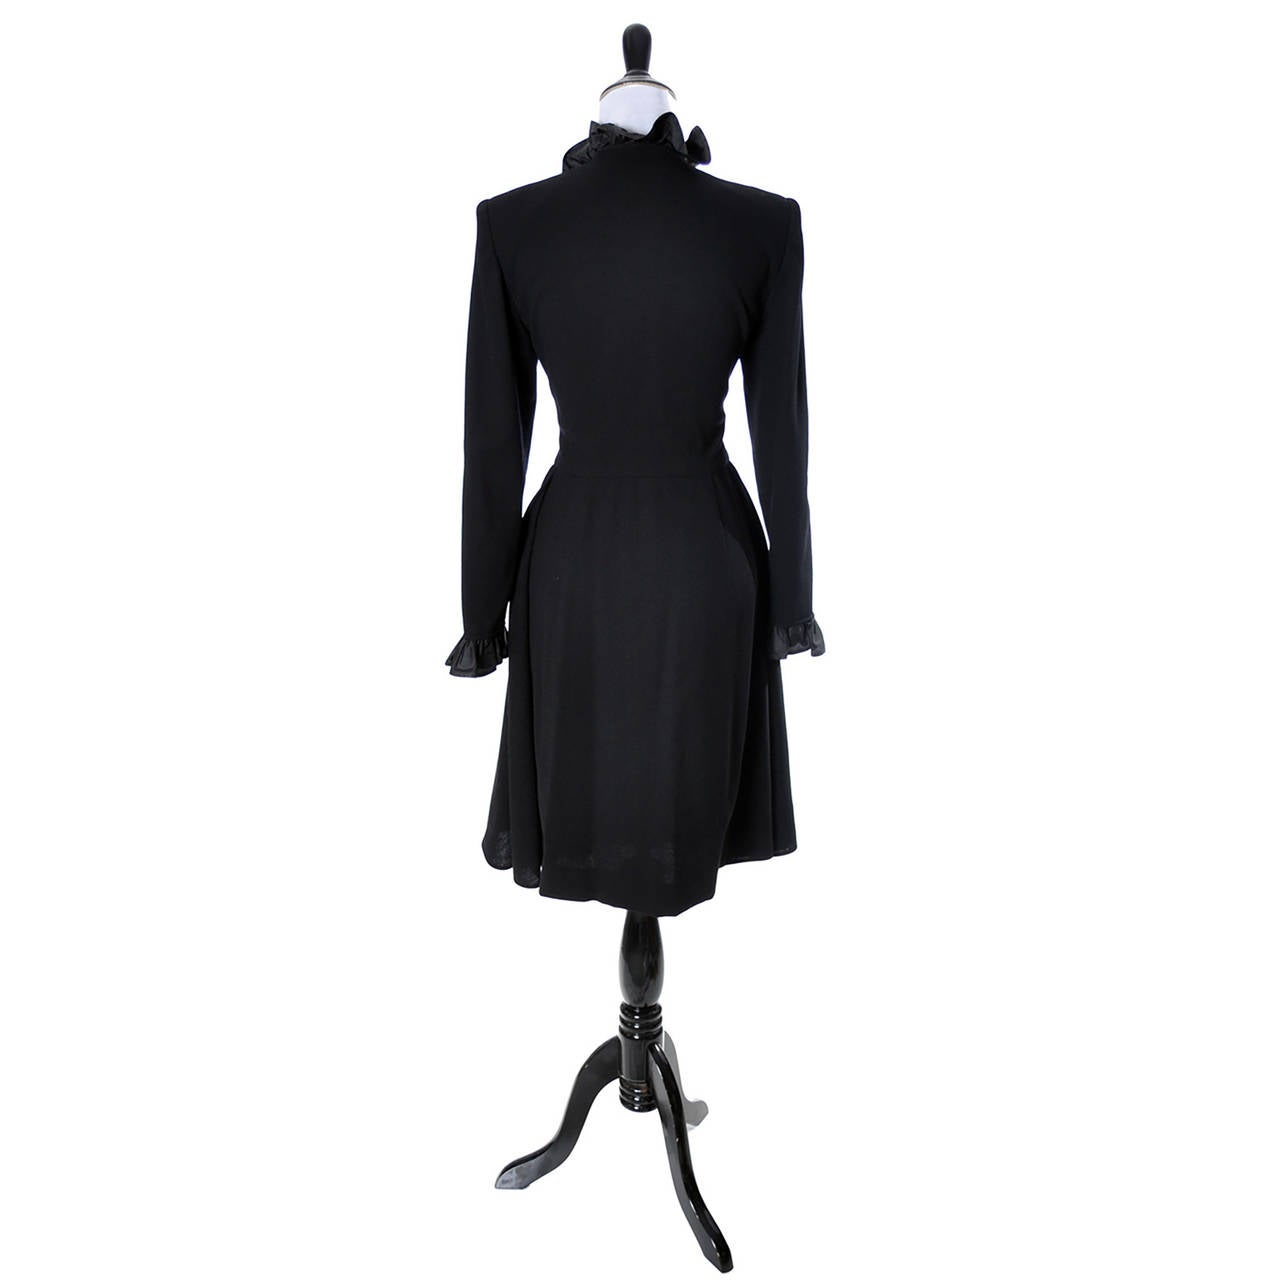 Vintage Valentino Black Wool Crepe Dress w/ Ruffled Taffeta Trim Size 6 5